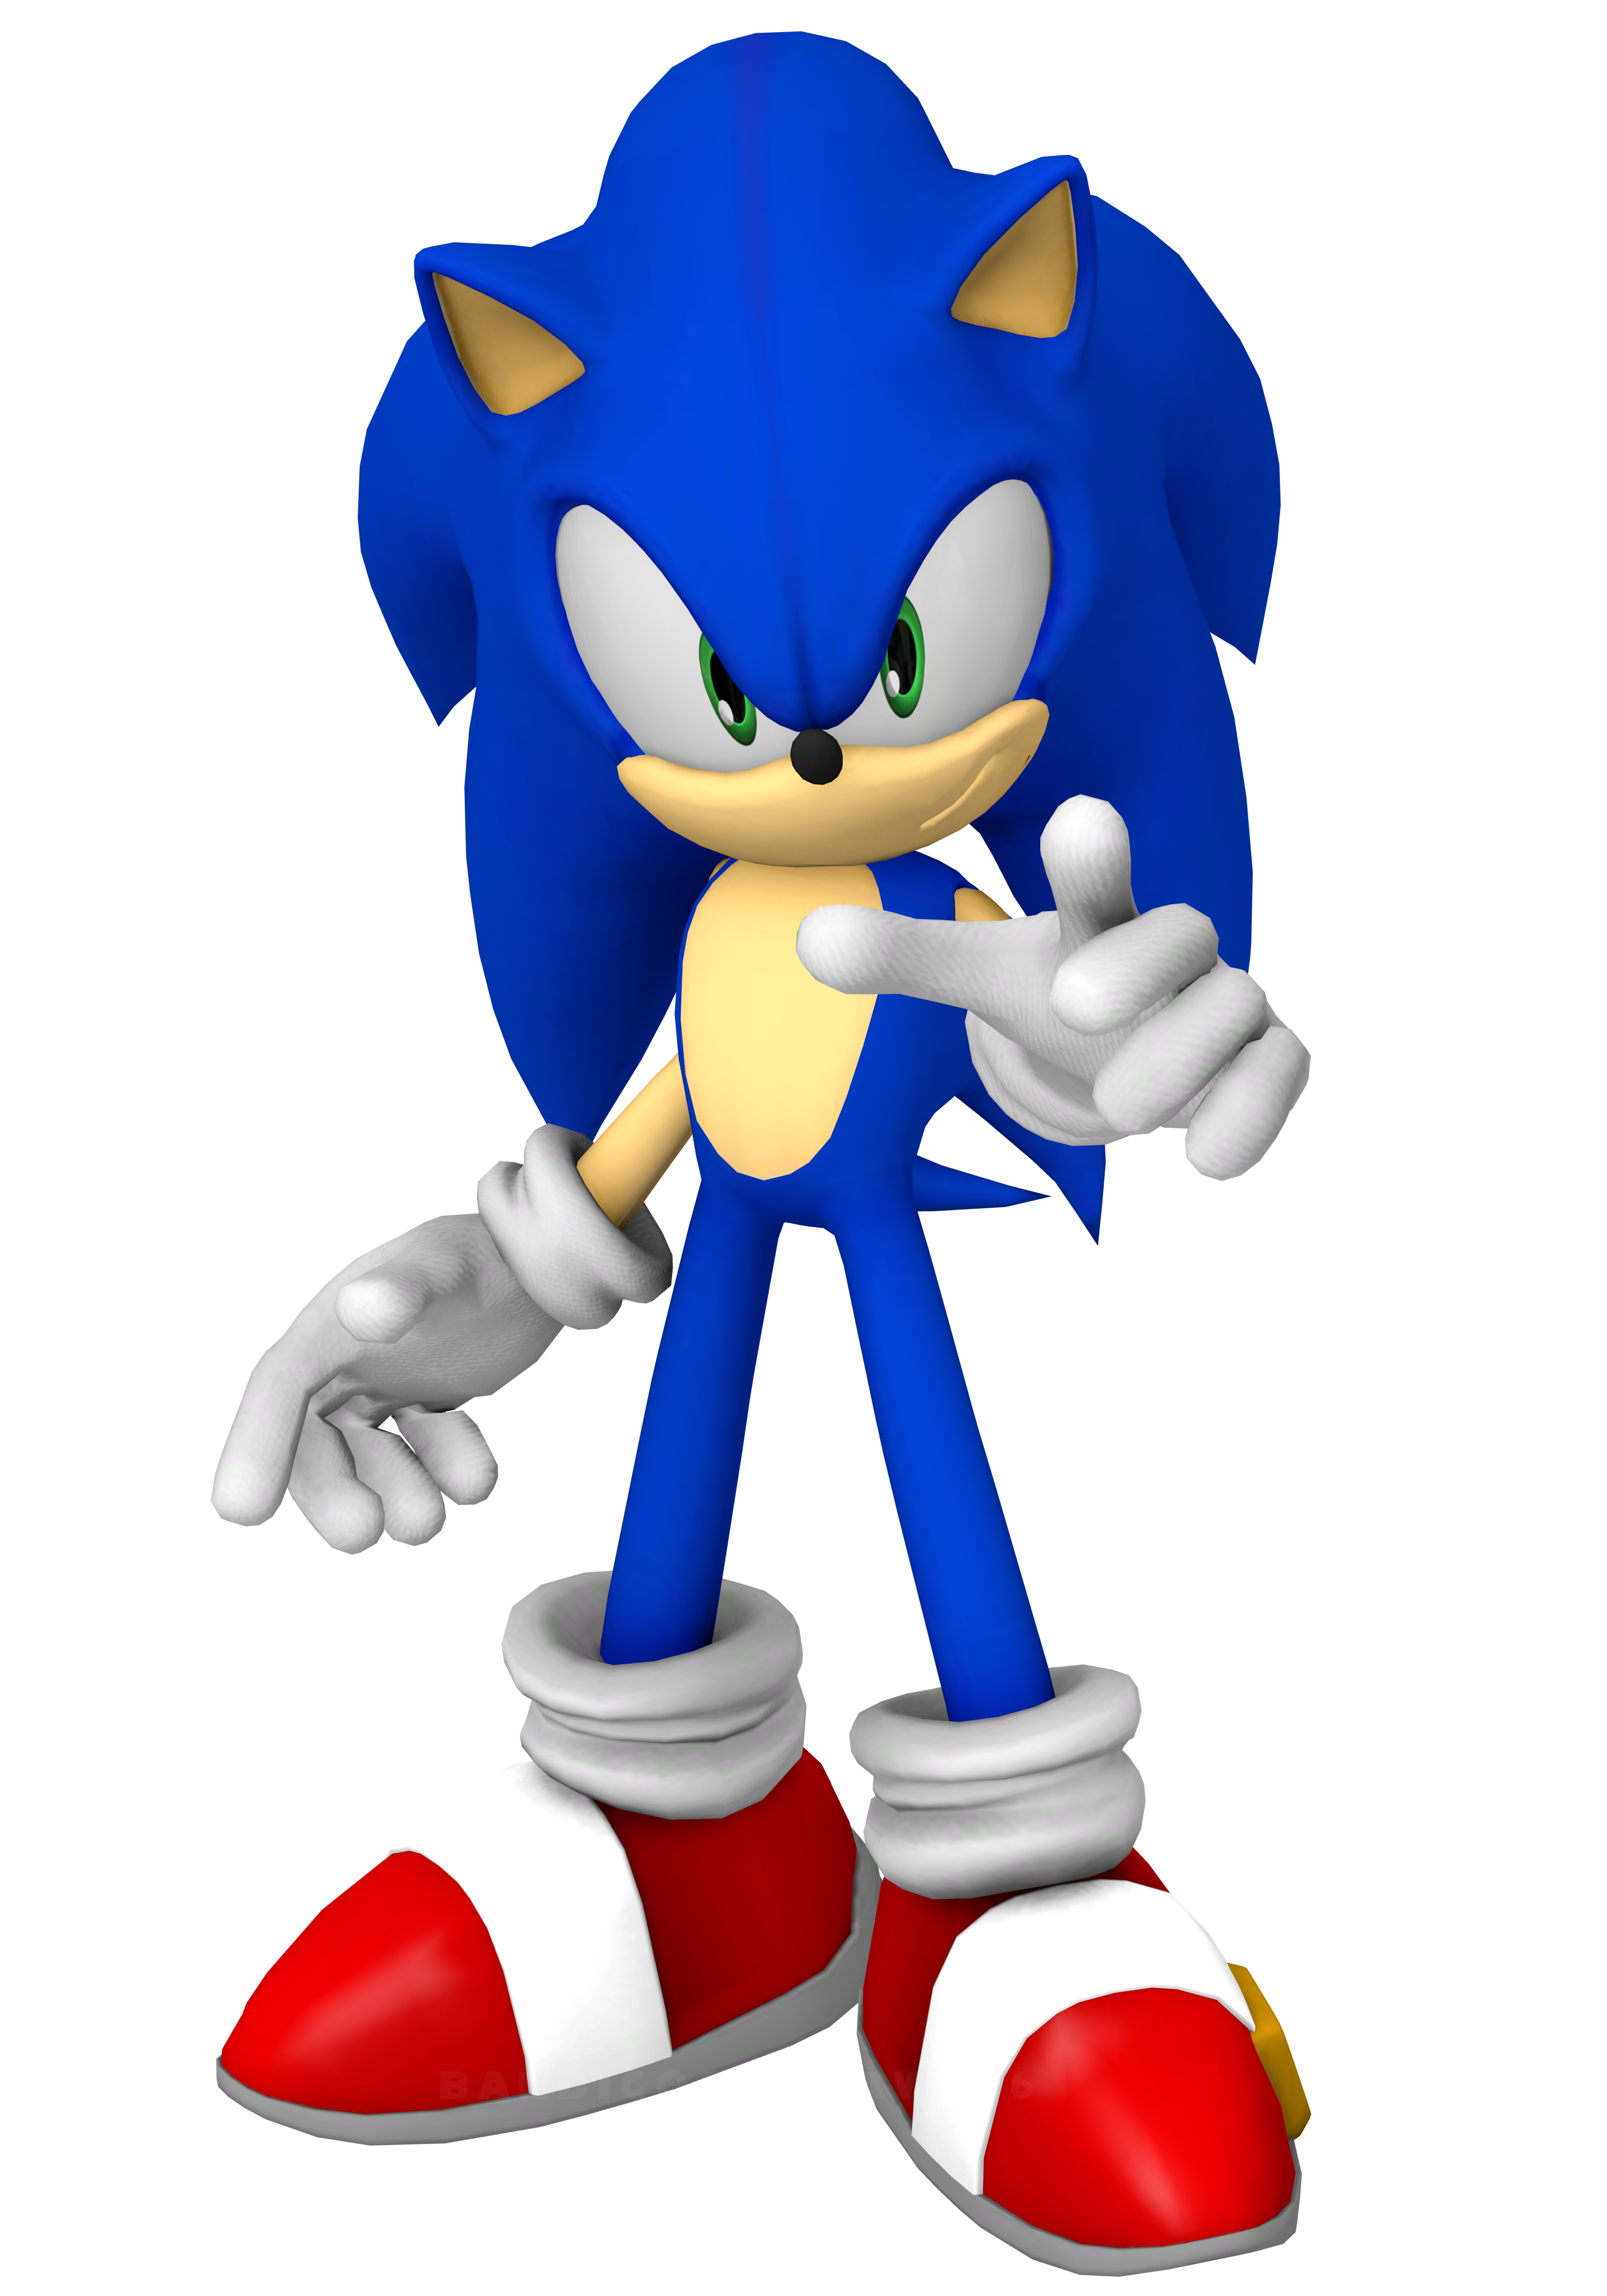 In His World Sonic The Hedgehog 2006 Render By